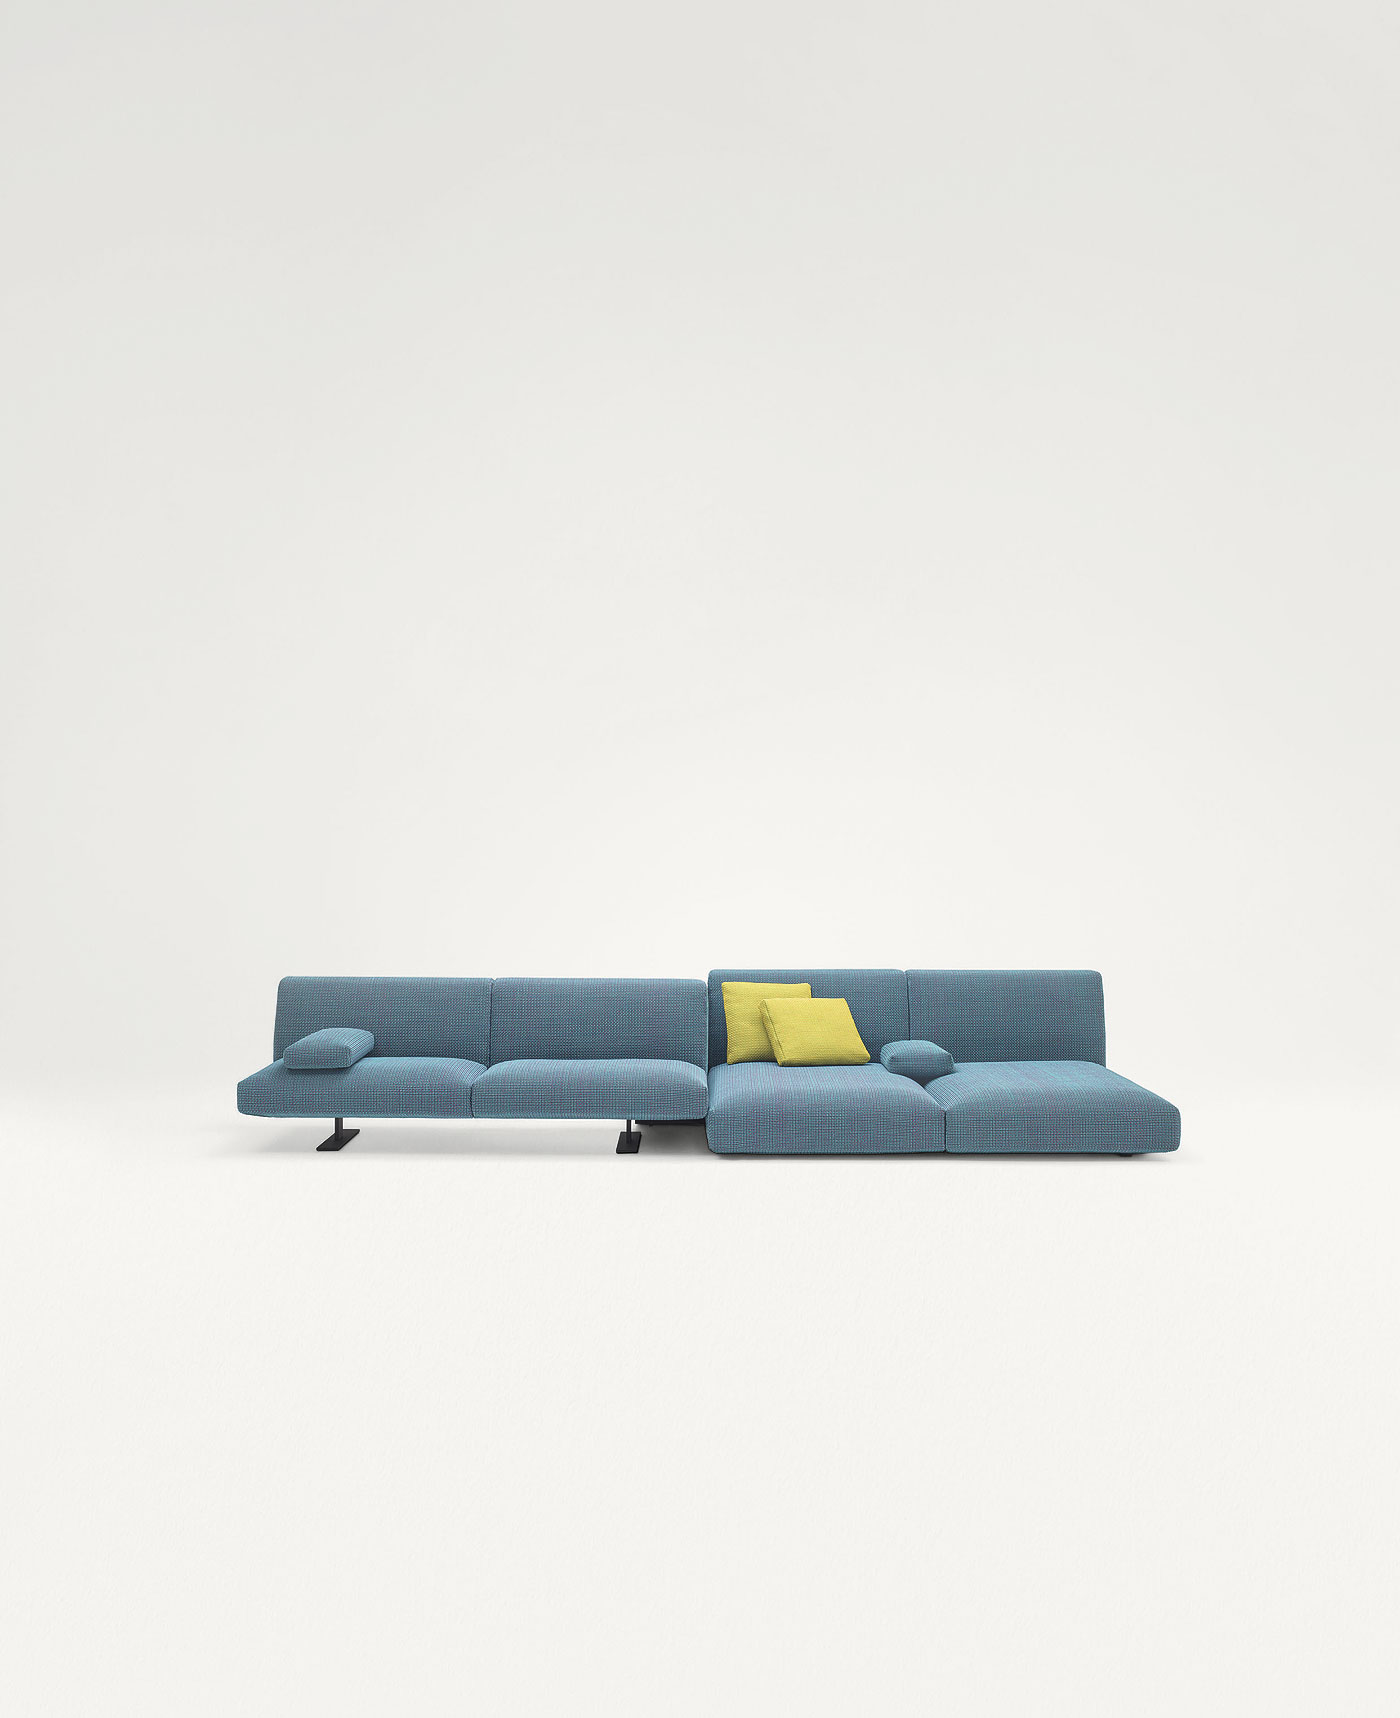 sofa-move-francesco-rota-paola-lenti (2)